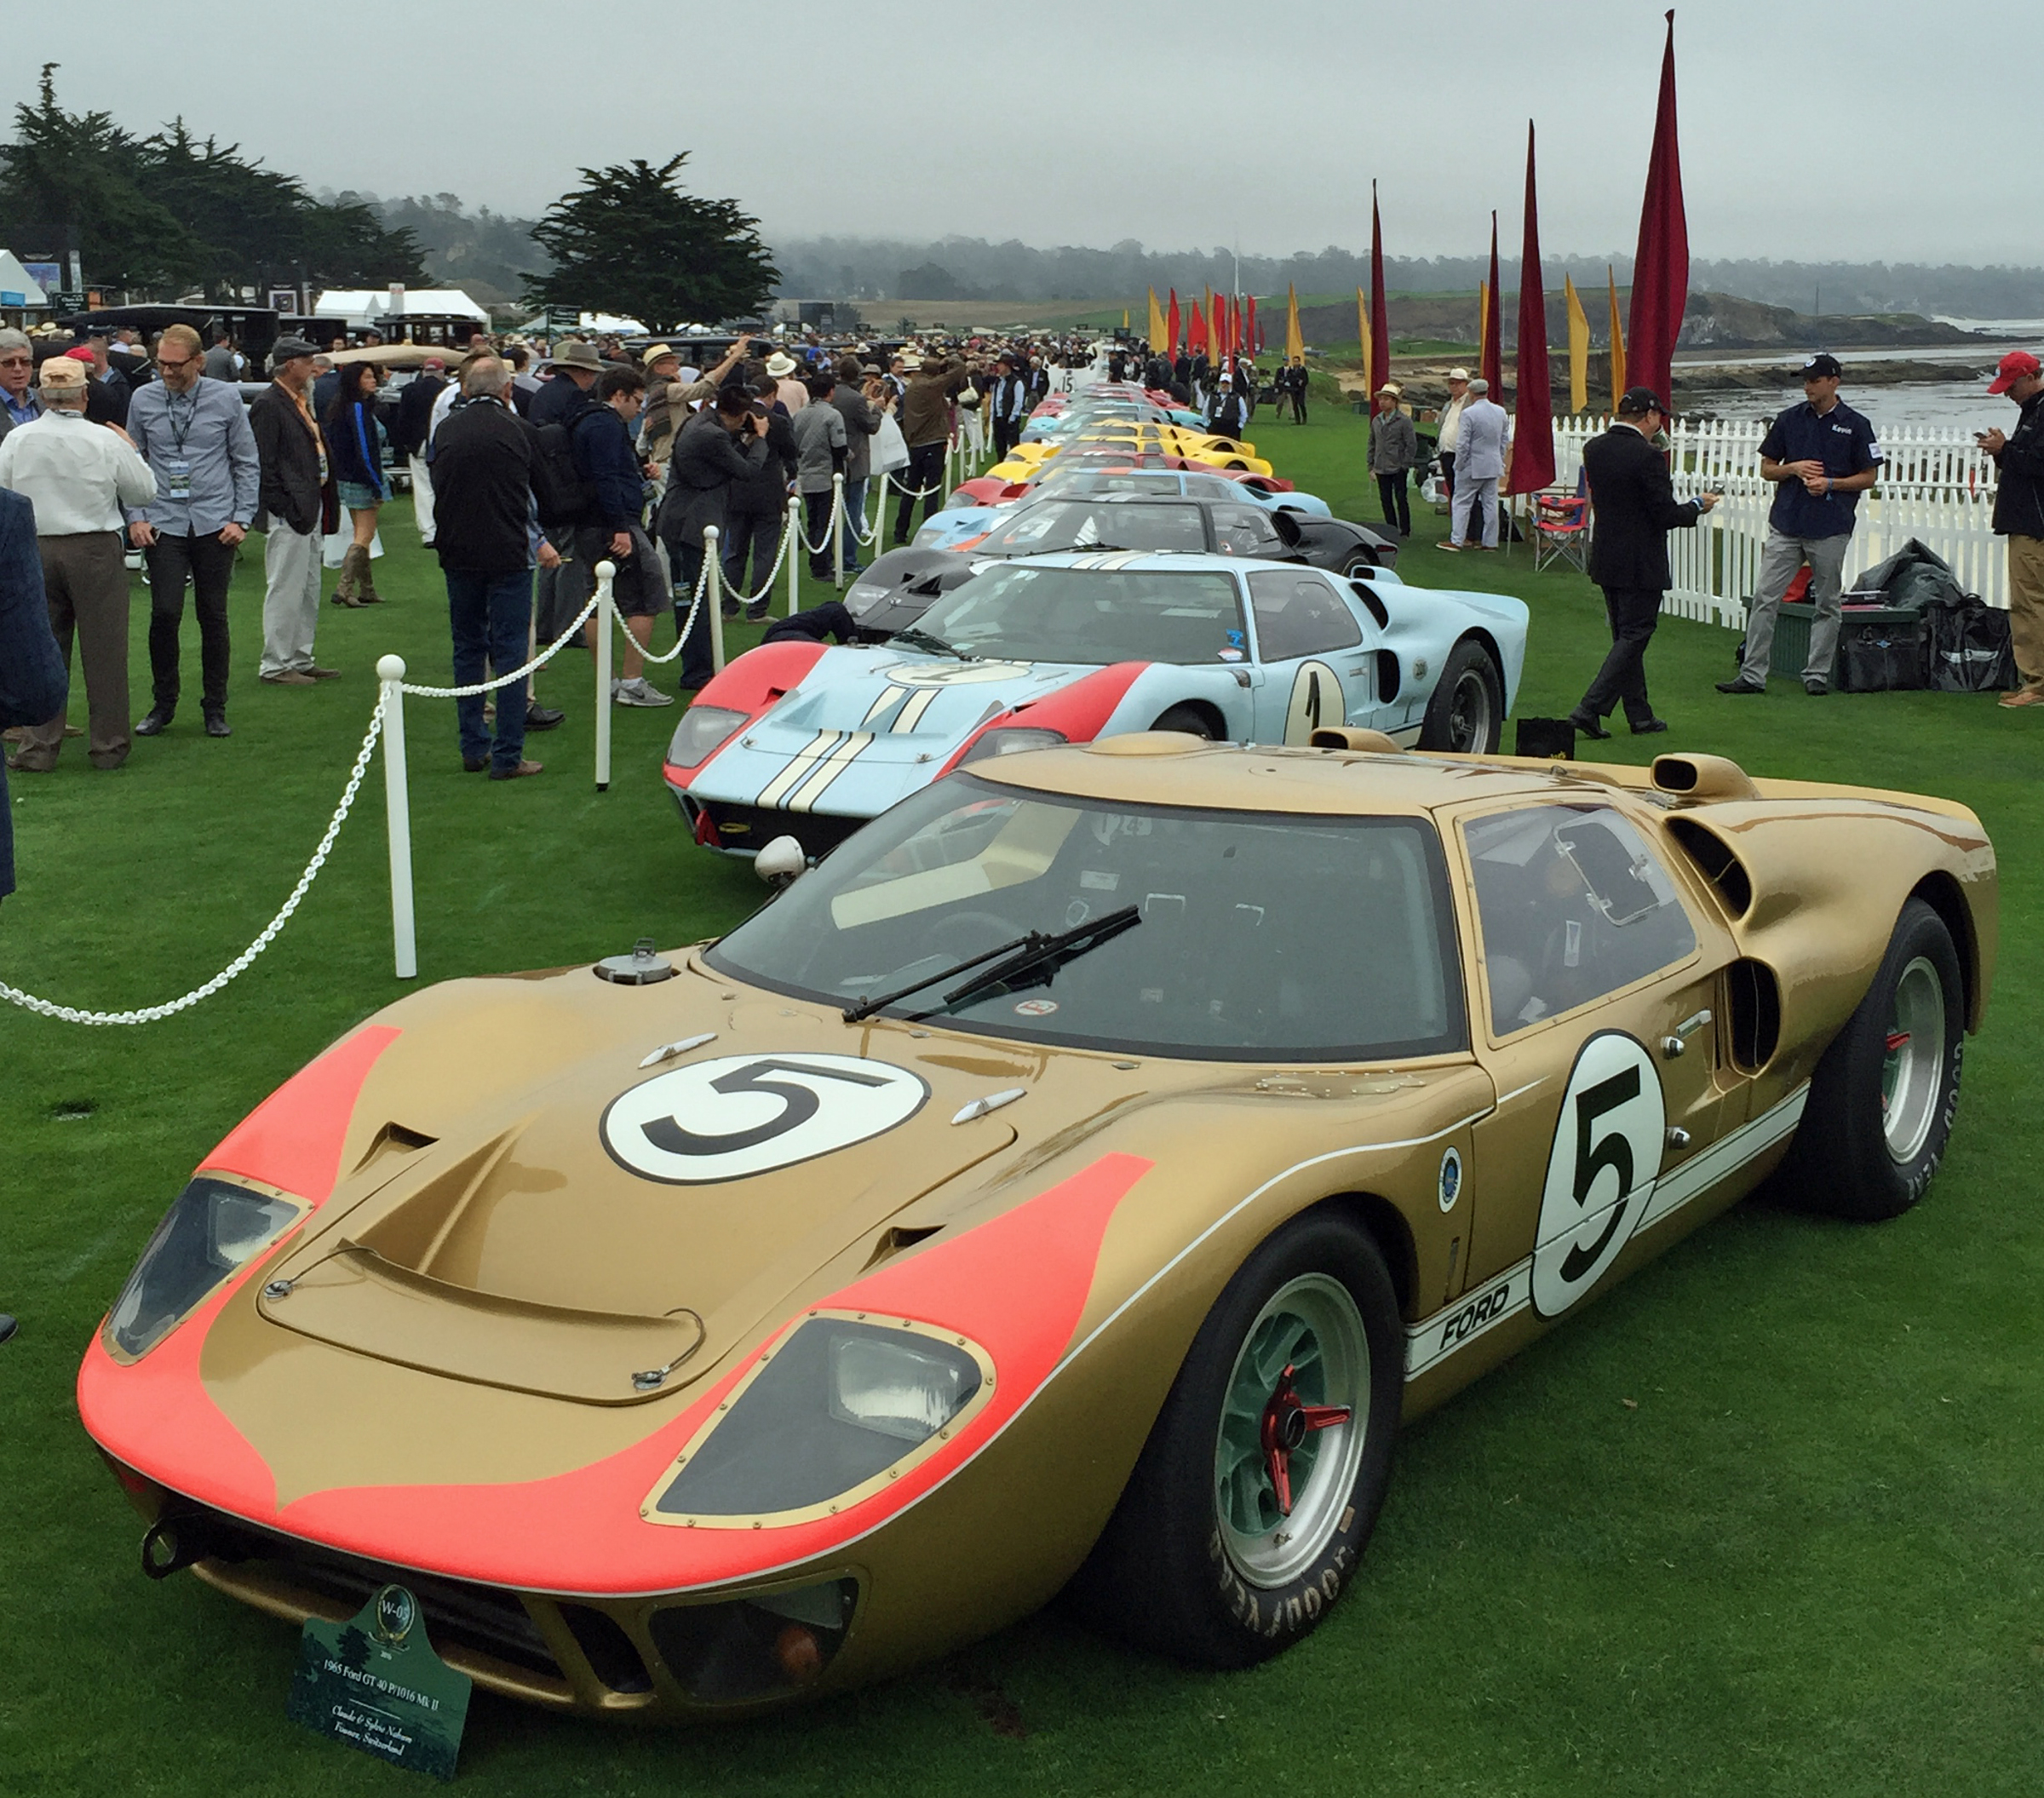 ford gt40s flood the 2016 pebble beach concours karl on cars with an emphasis on performance cars. Black Bedroom Furniture Sets. Home Design Ideas